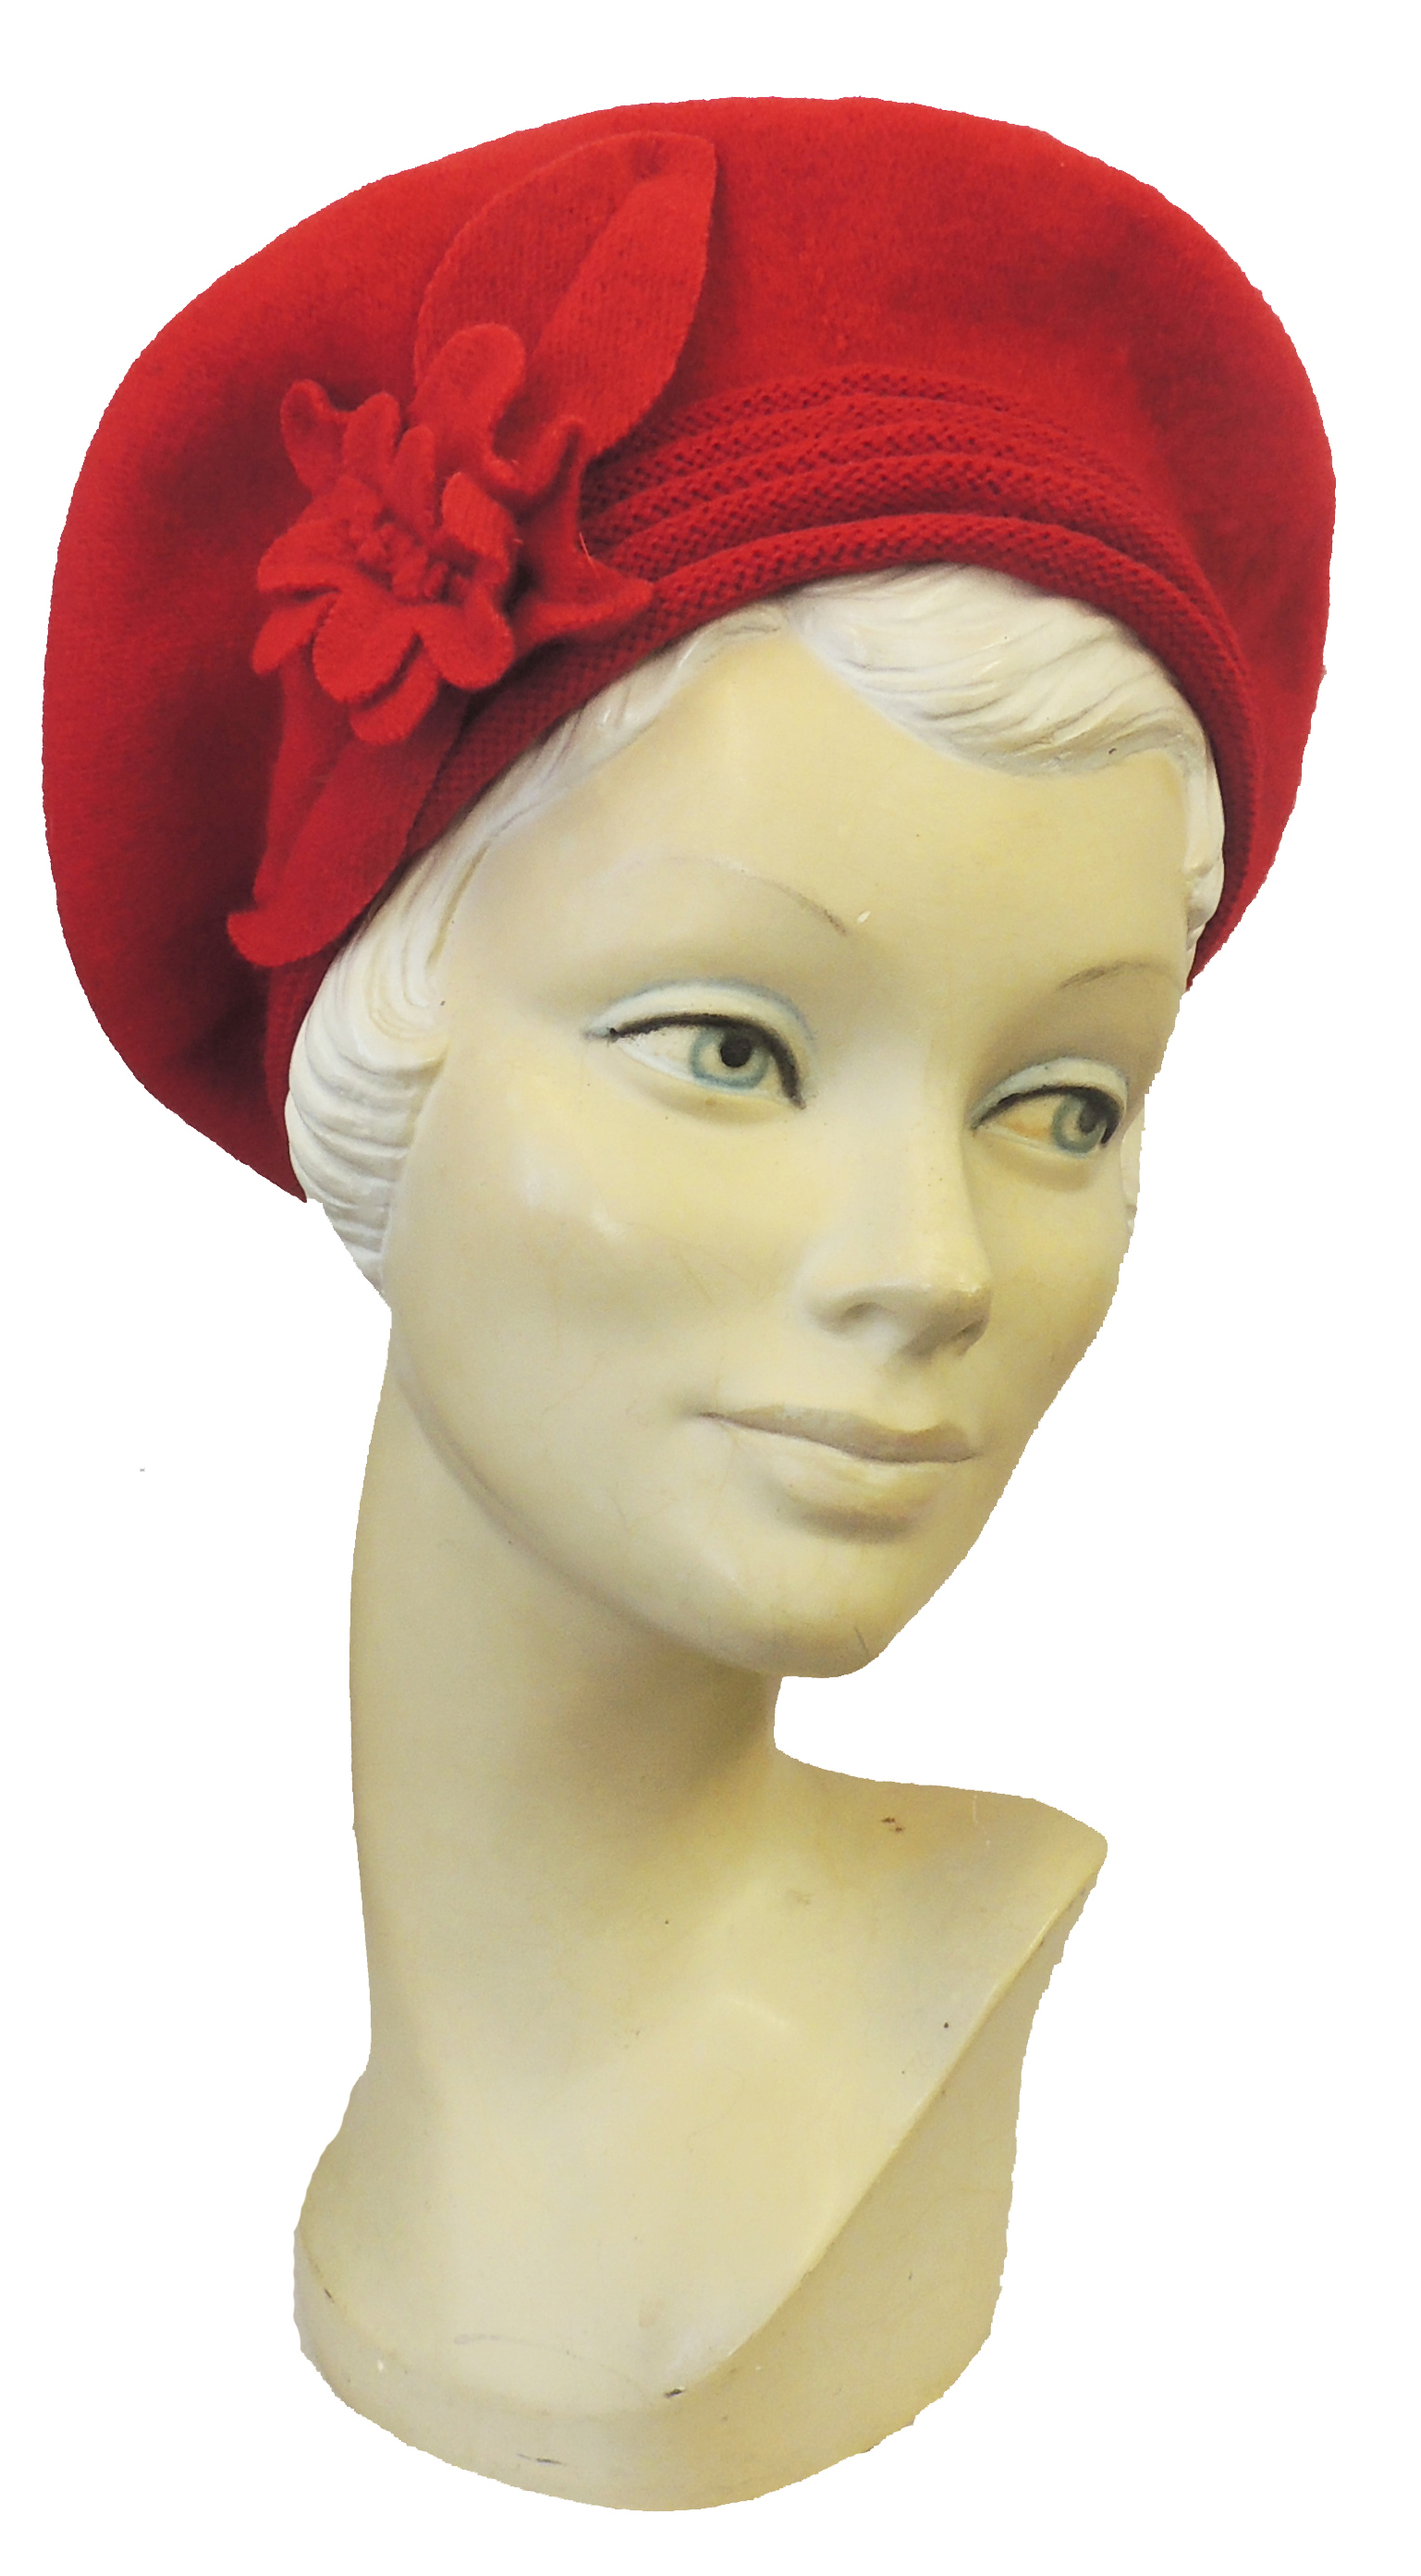 1940s Hats History    New Ladies VTG 1930s 40s WW2 Wartime Felt Flower Knit Halo Beret Hat $16.99 AT vintagedancer.com